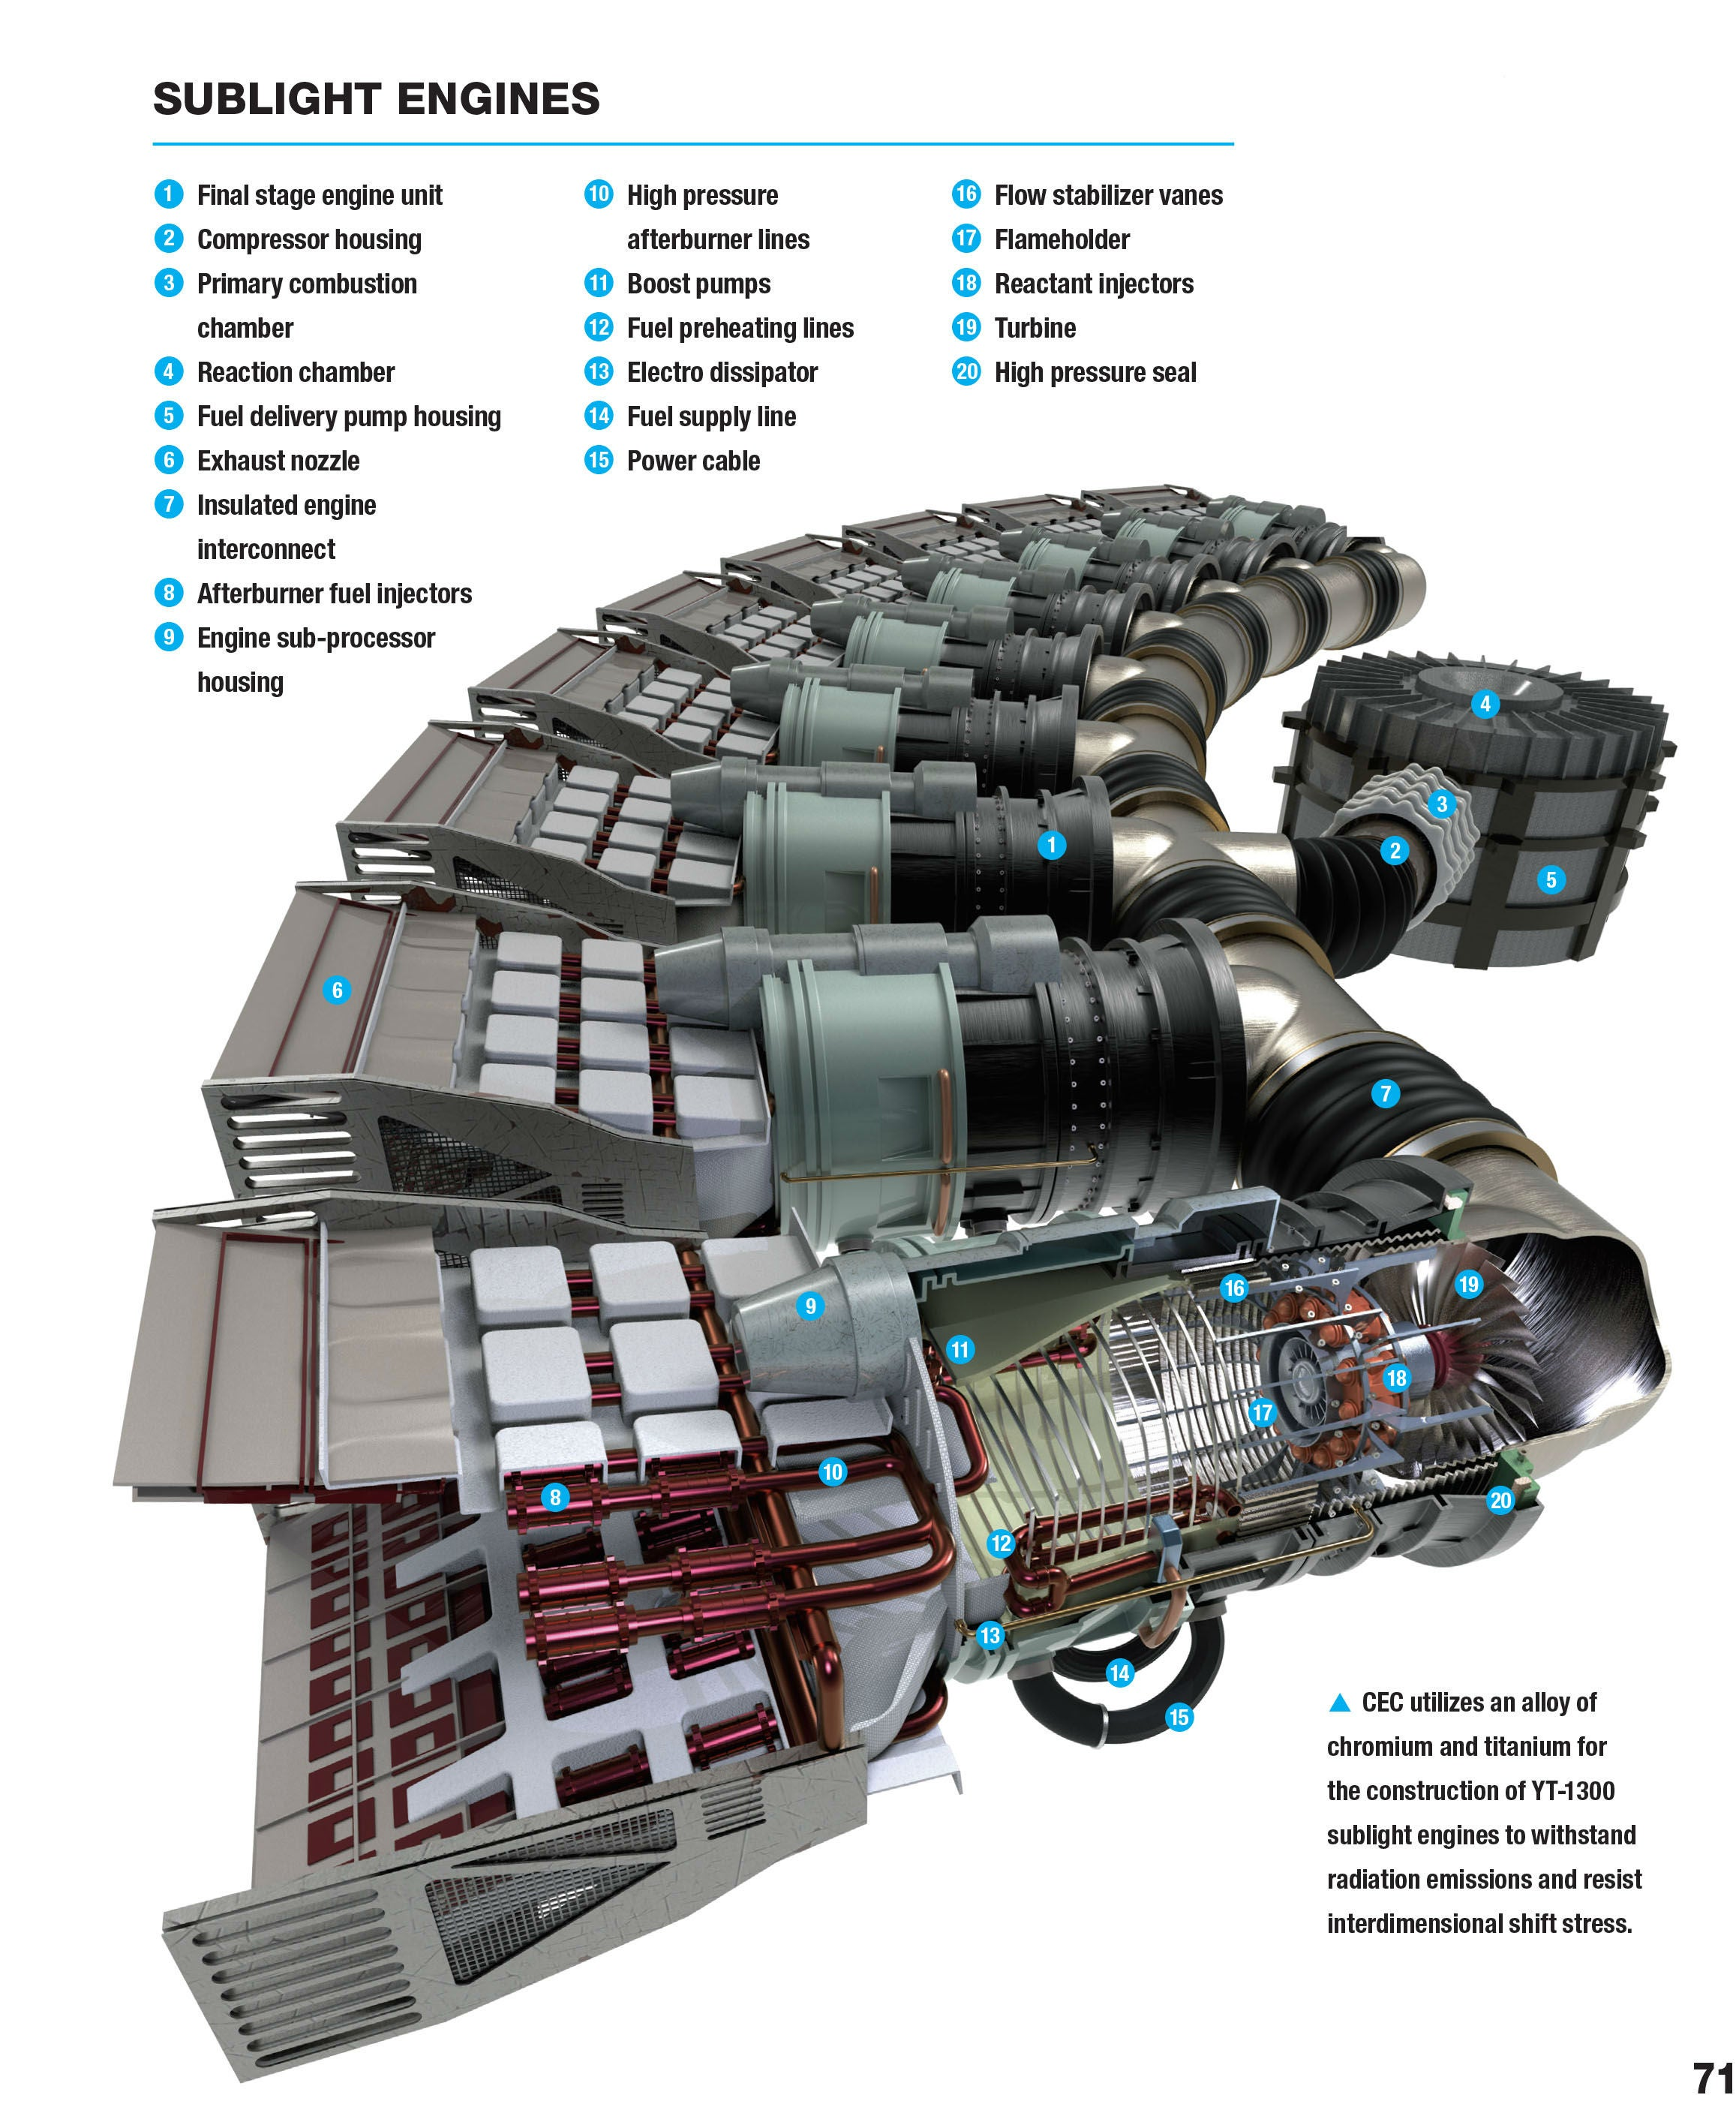 Millennium Falcon Alternate Layouts That'll Blow Your Mind